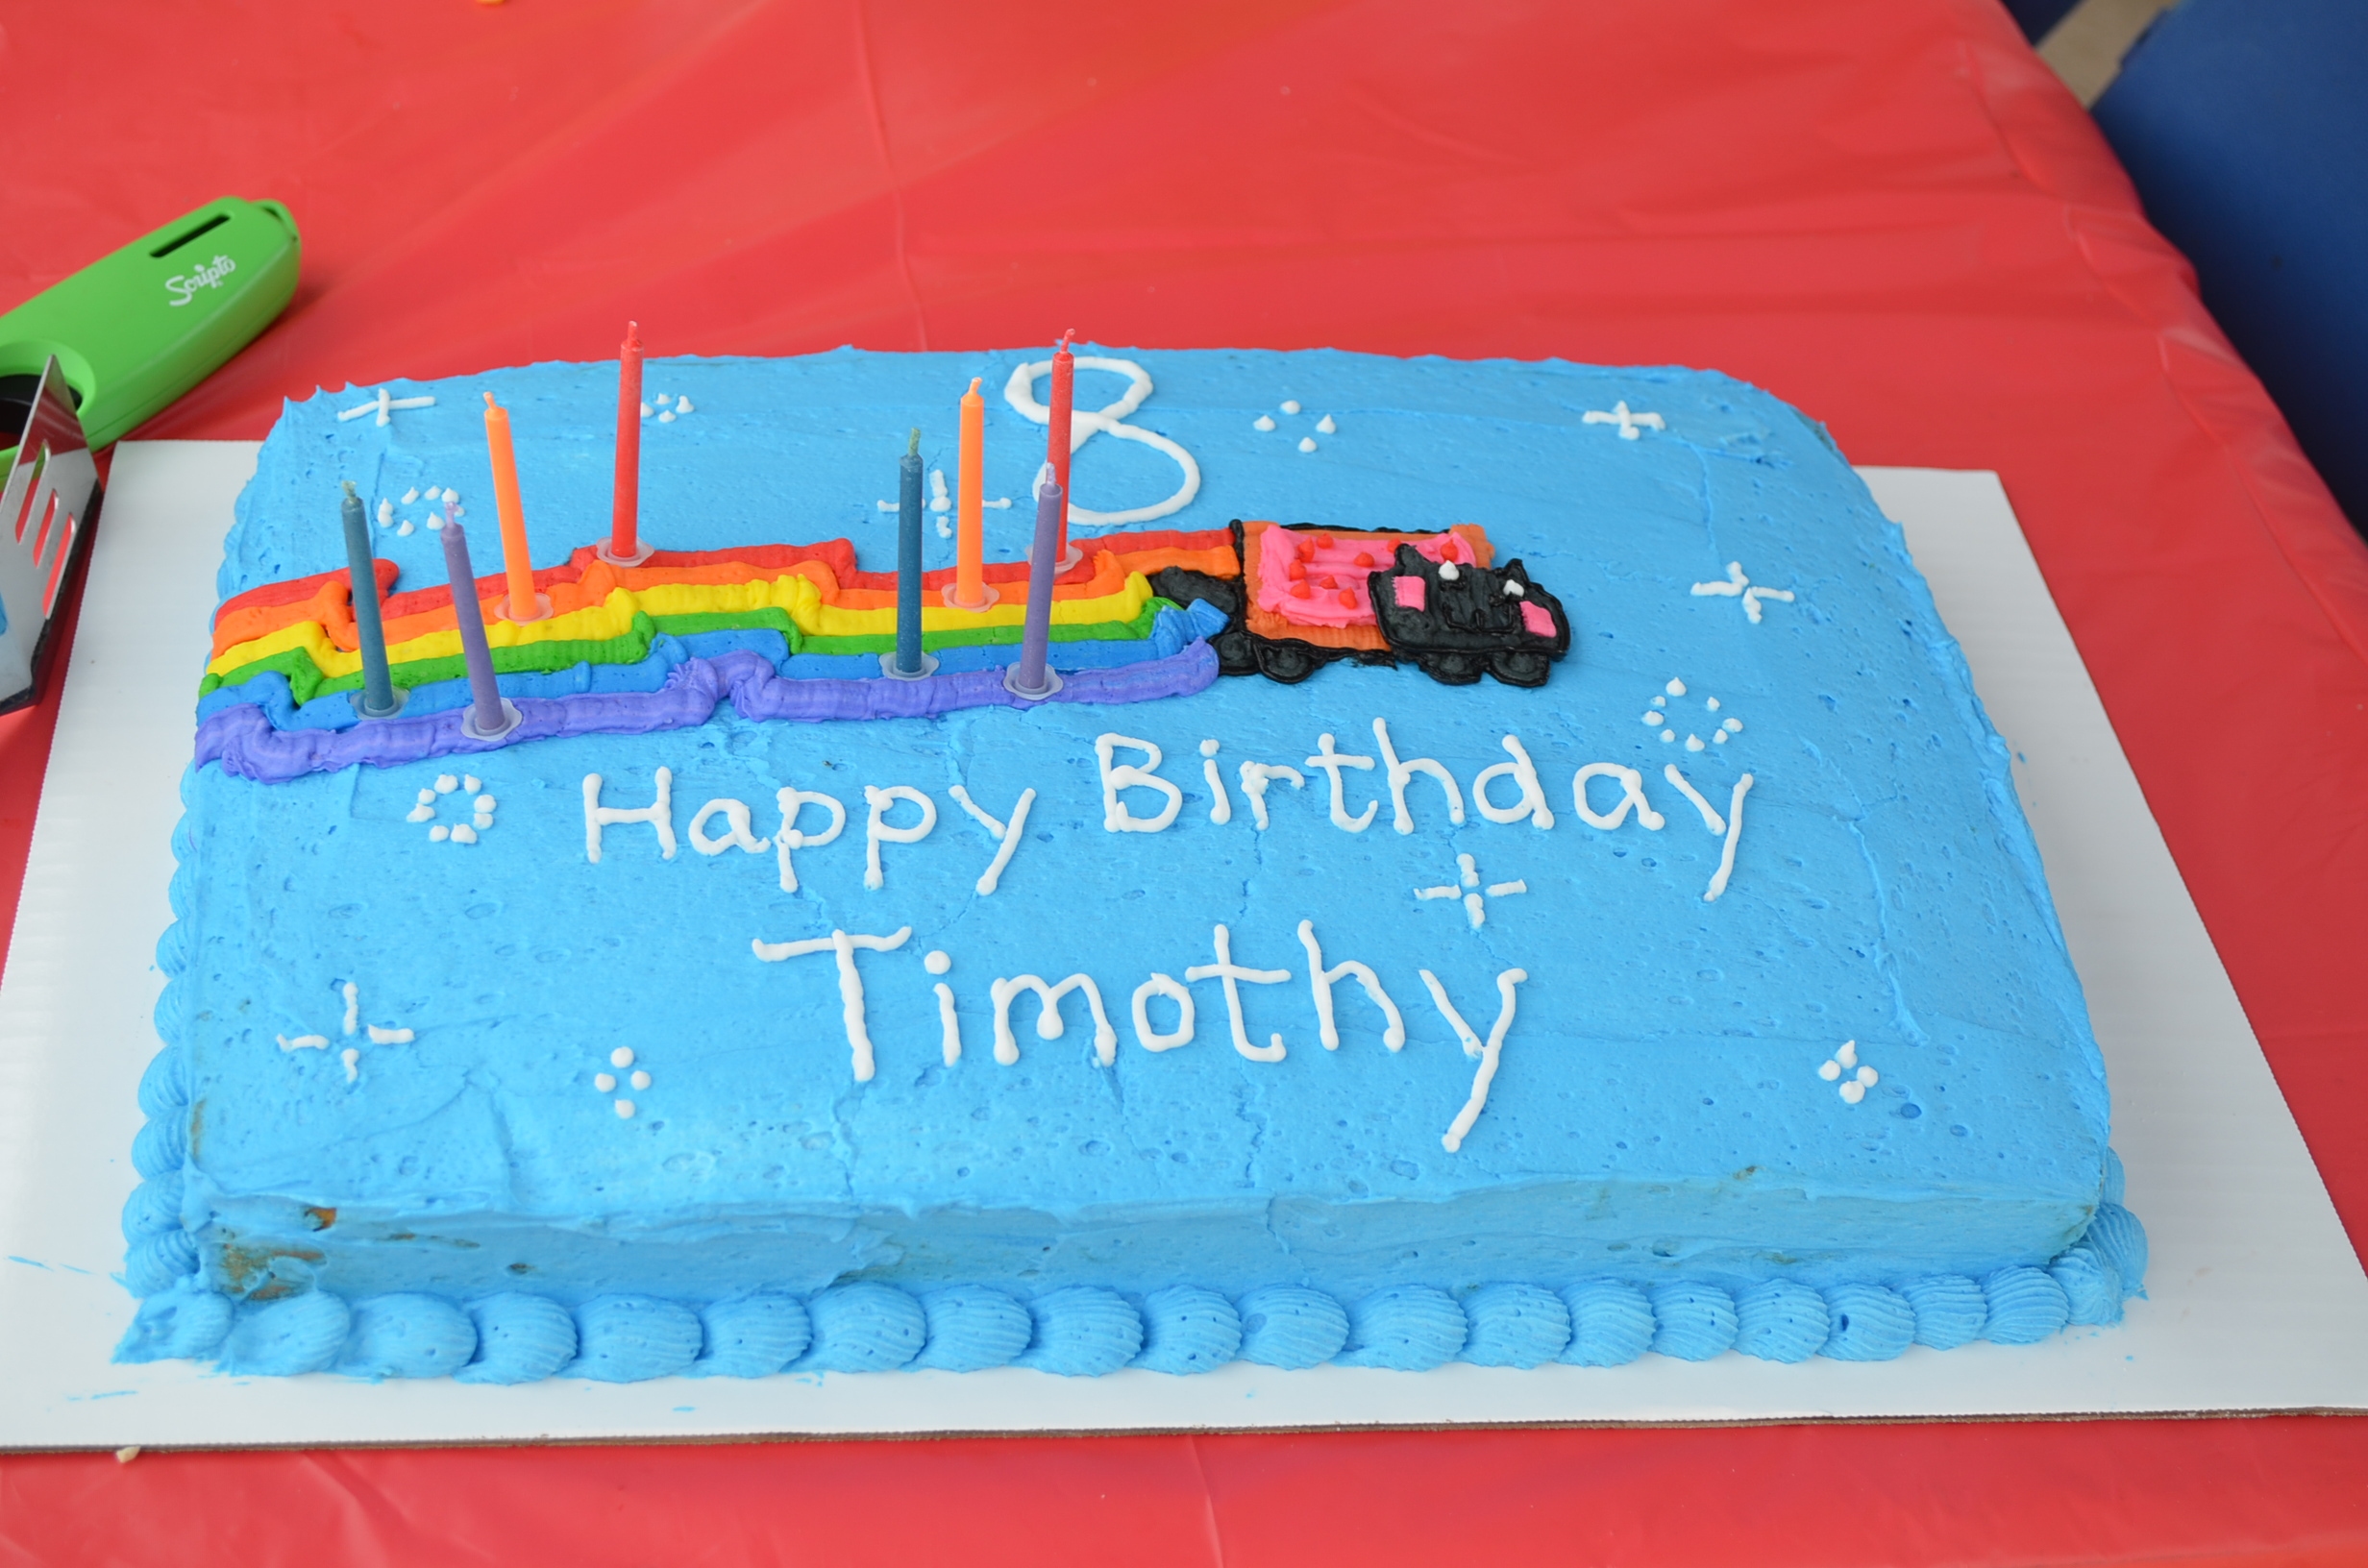 The Cake Was Fun To Make I Happened To Have All The Food Color Gels For  The Rainbow